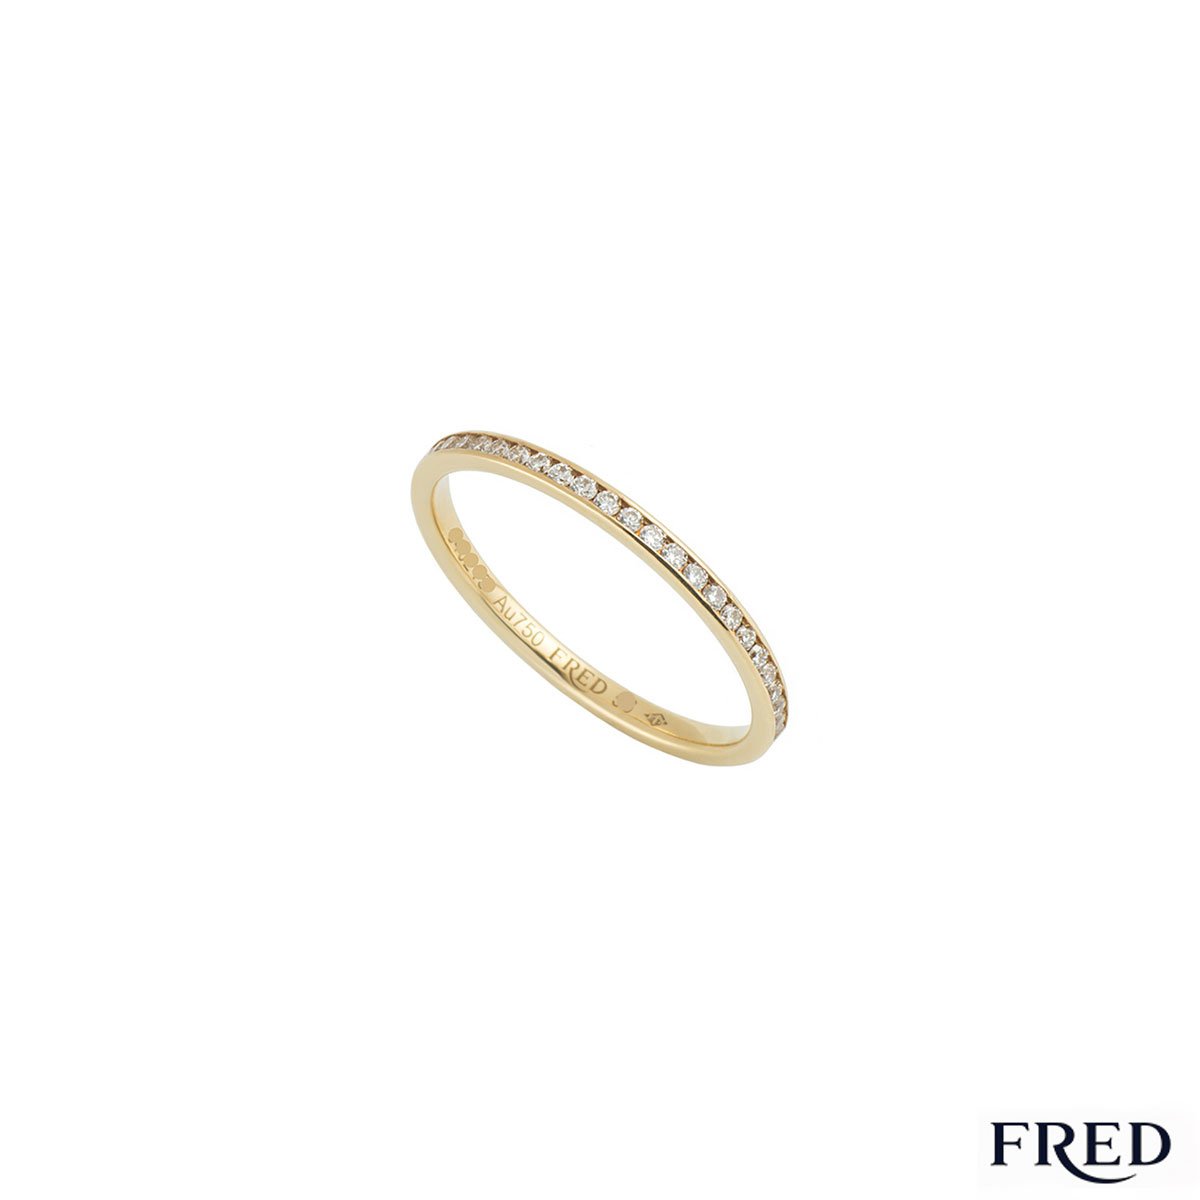 Fred Yellow Gold Full Diamond Eternity Ring 0.36ct G+/VS+